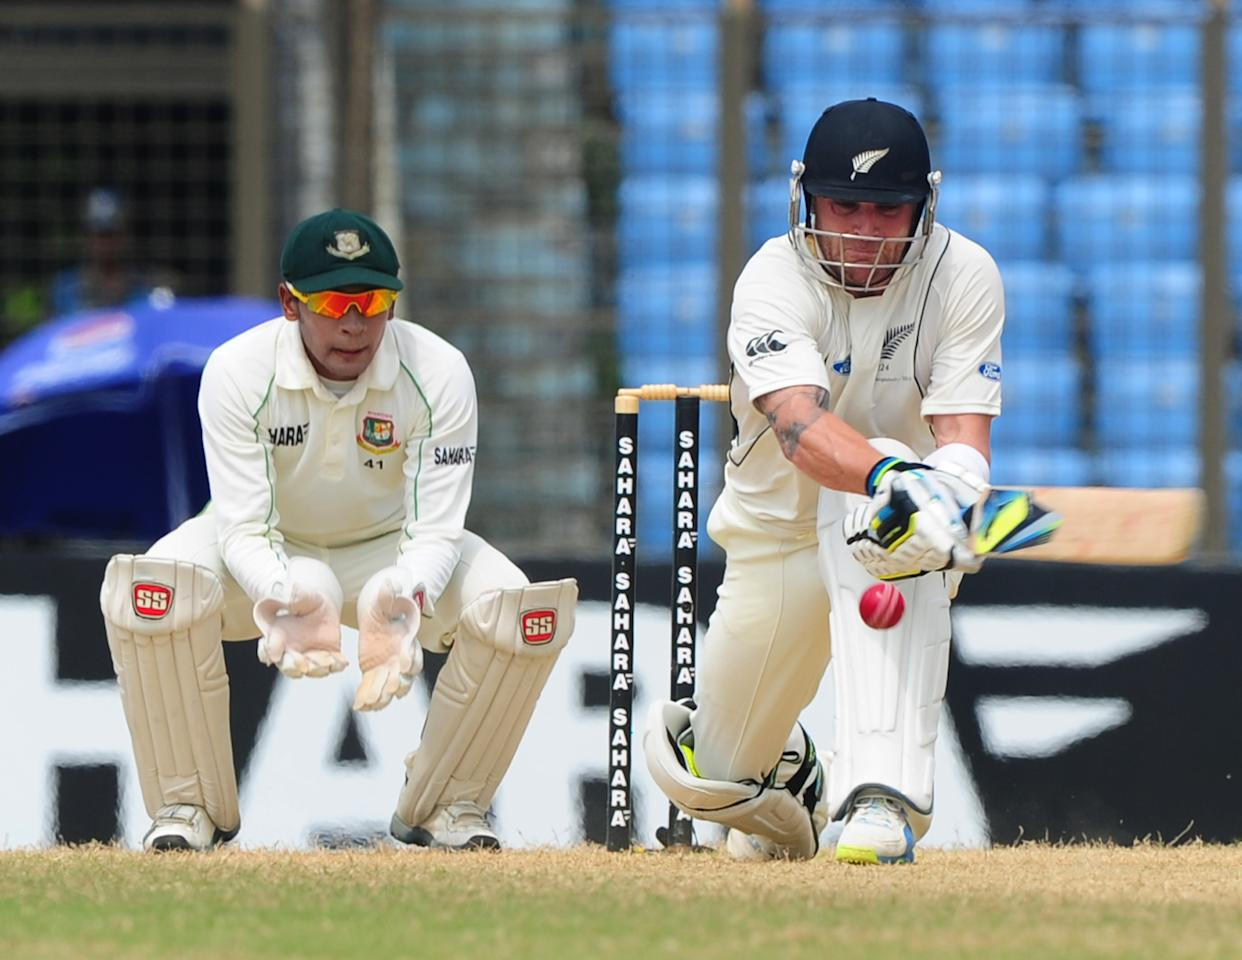 New Zealand captain Brendon McCullum (R) plays a shot as the Bangladesh captain Mushfiqur Rahim looks on during the fifth and final day of the first cricket Test match between Bangladesh and New Zealand at The Zahur Ahmed Chowdhury Stadium in Chittagong on October 13, 2013. AFP PHOTO/Munir uz ZAMAN        (Photo credit should read MUNIR UZ ZAMAN/AFP/Getty Images)